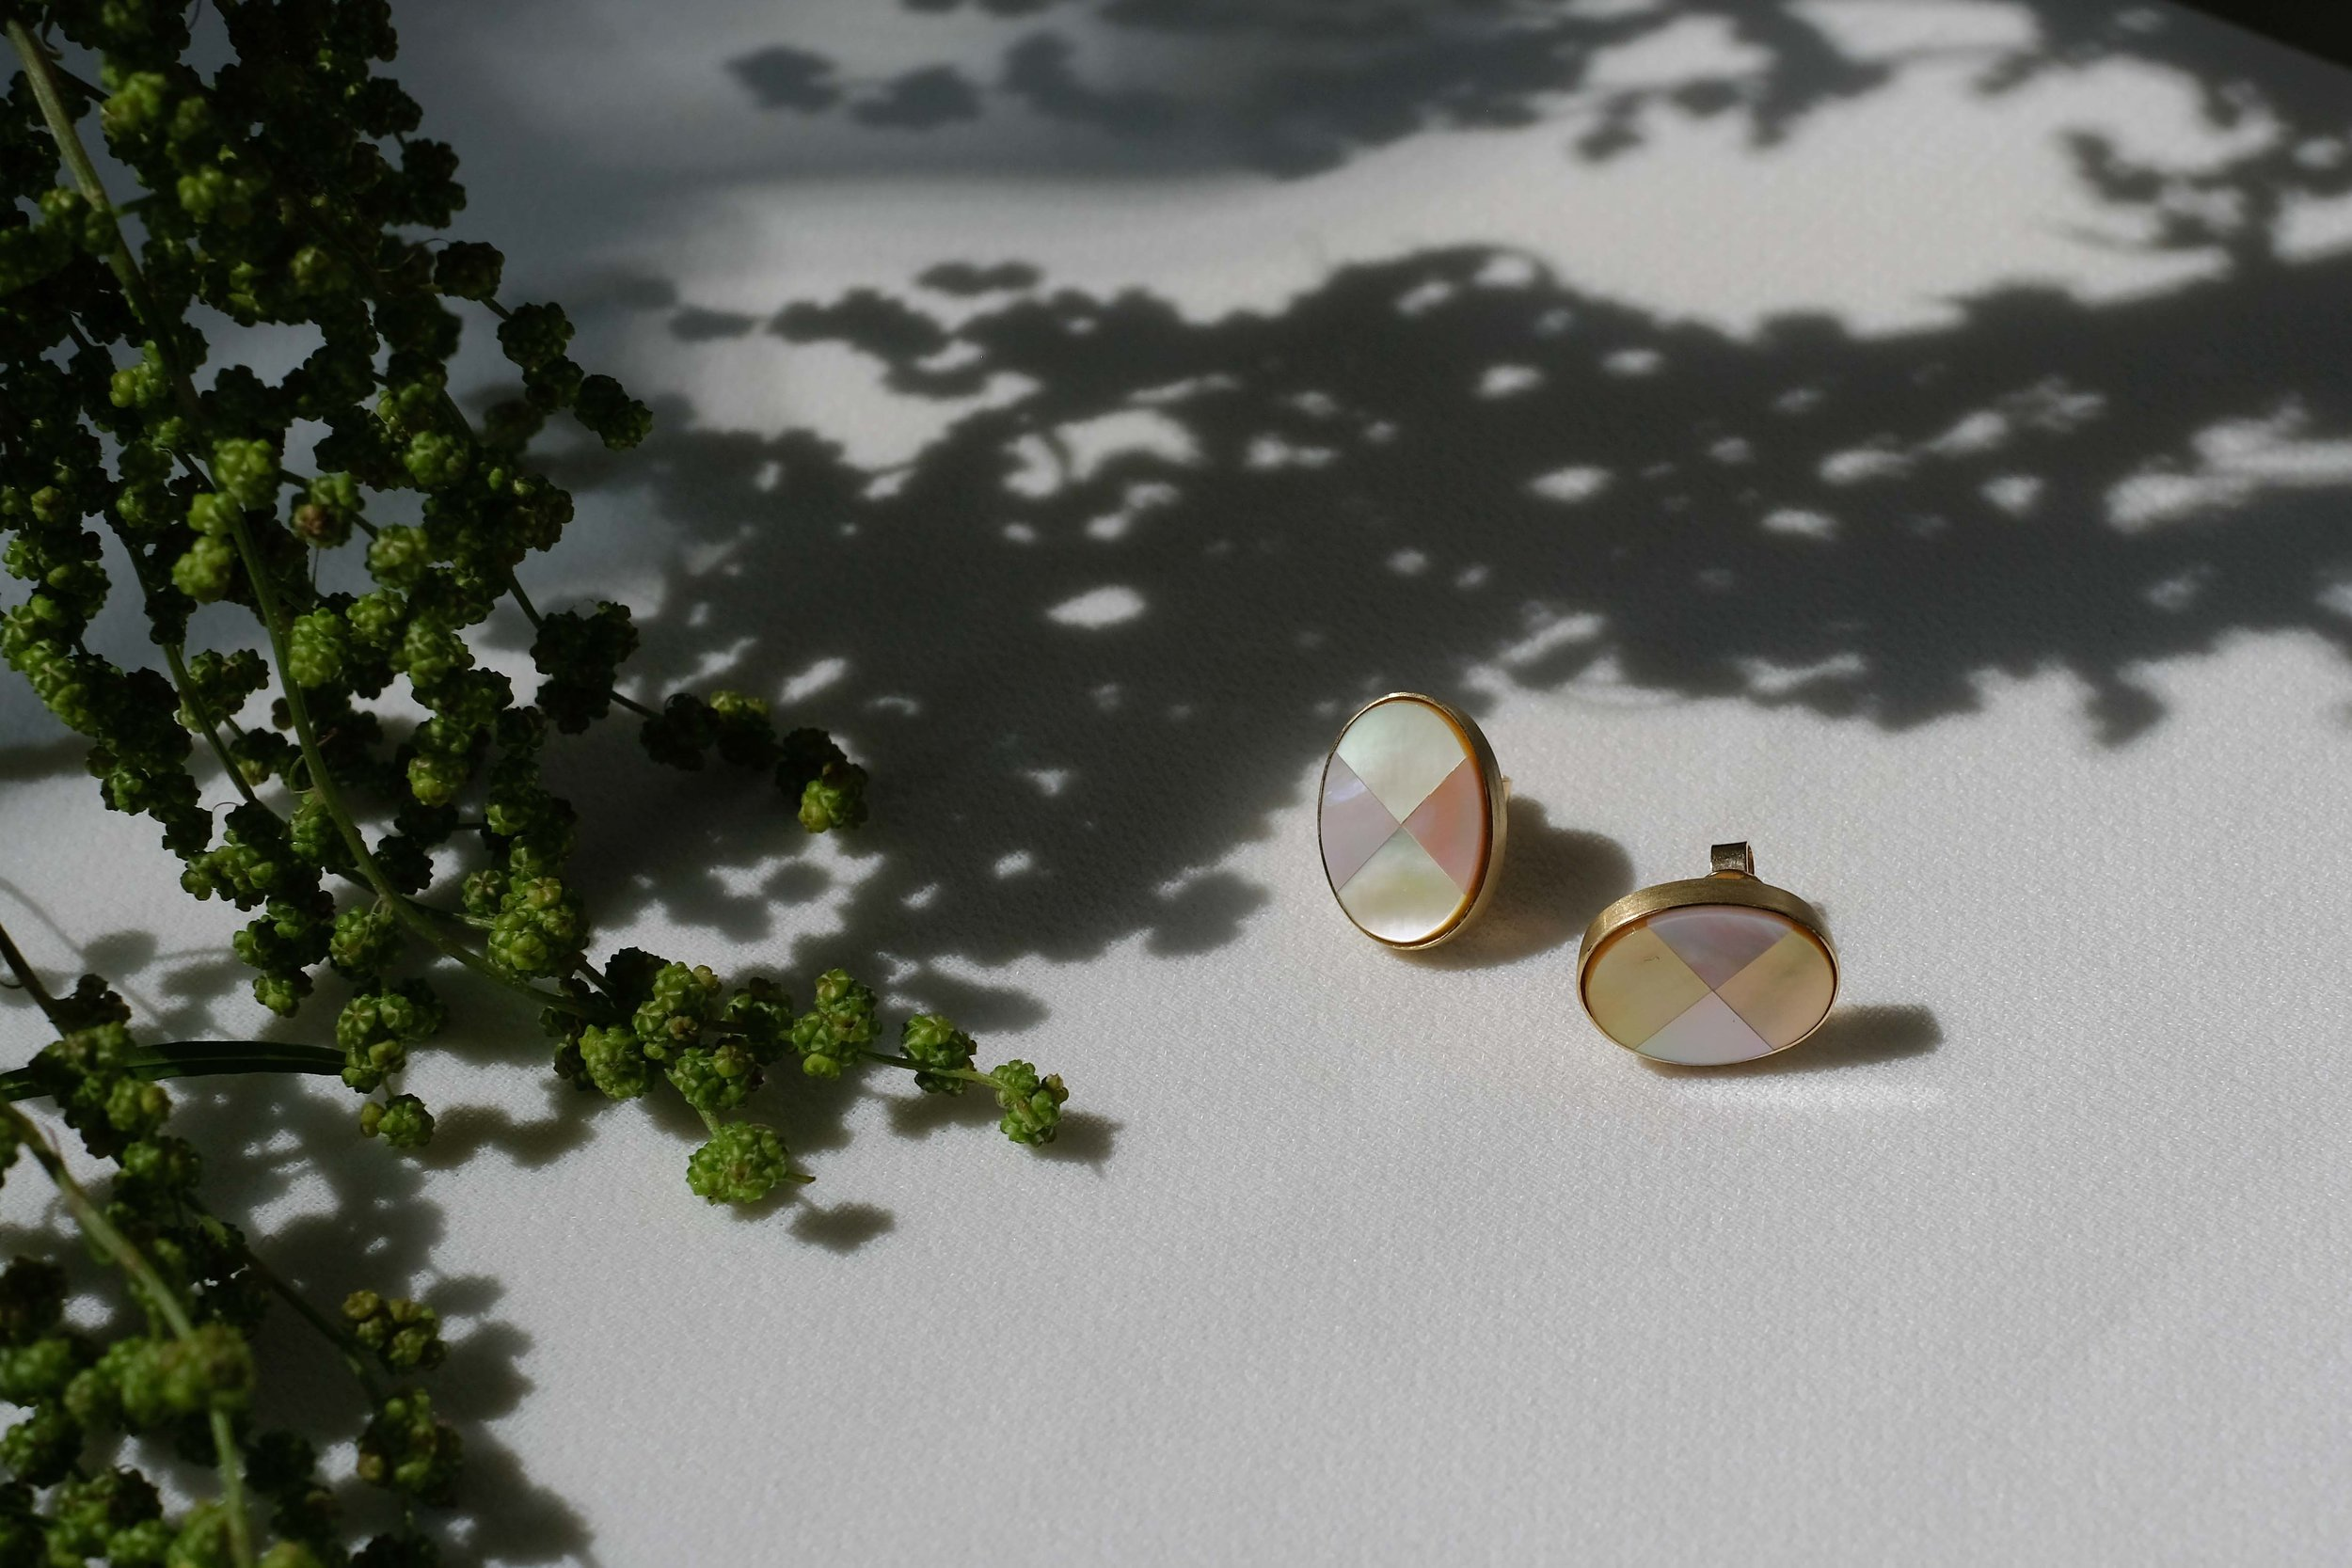 Dolce Earrings   Divided in quarters of pink and amber, this sweet looking wonder is a sight that melts the heart.